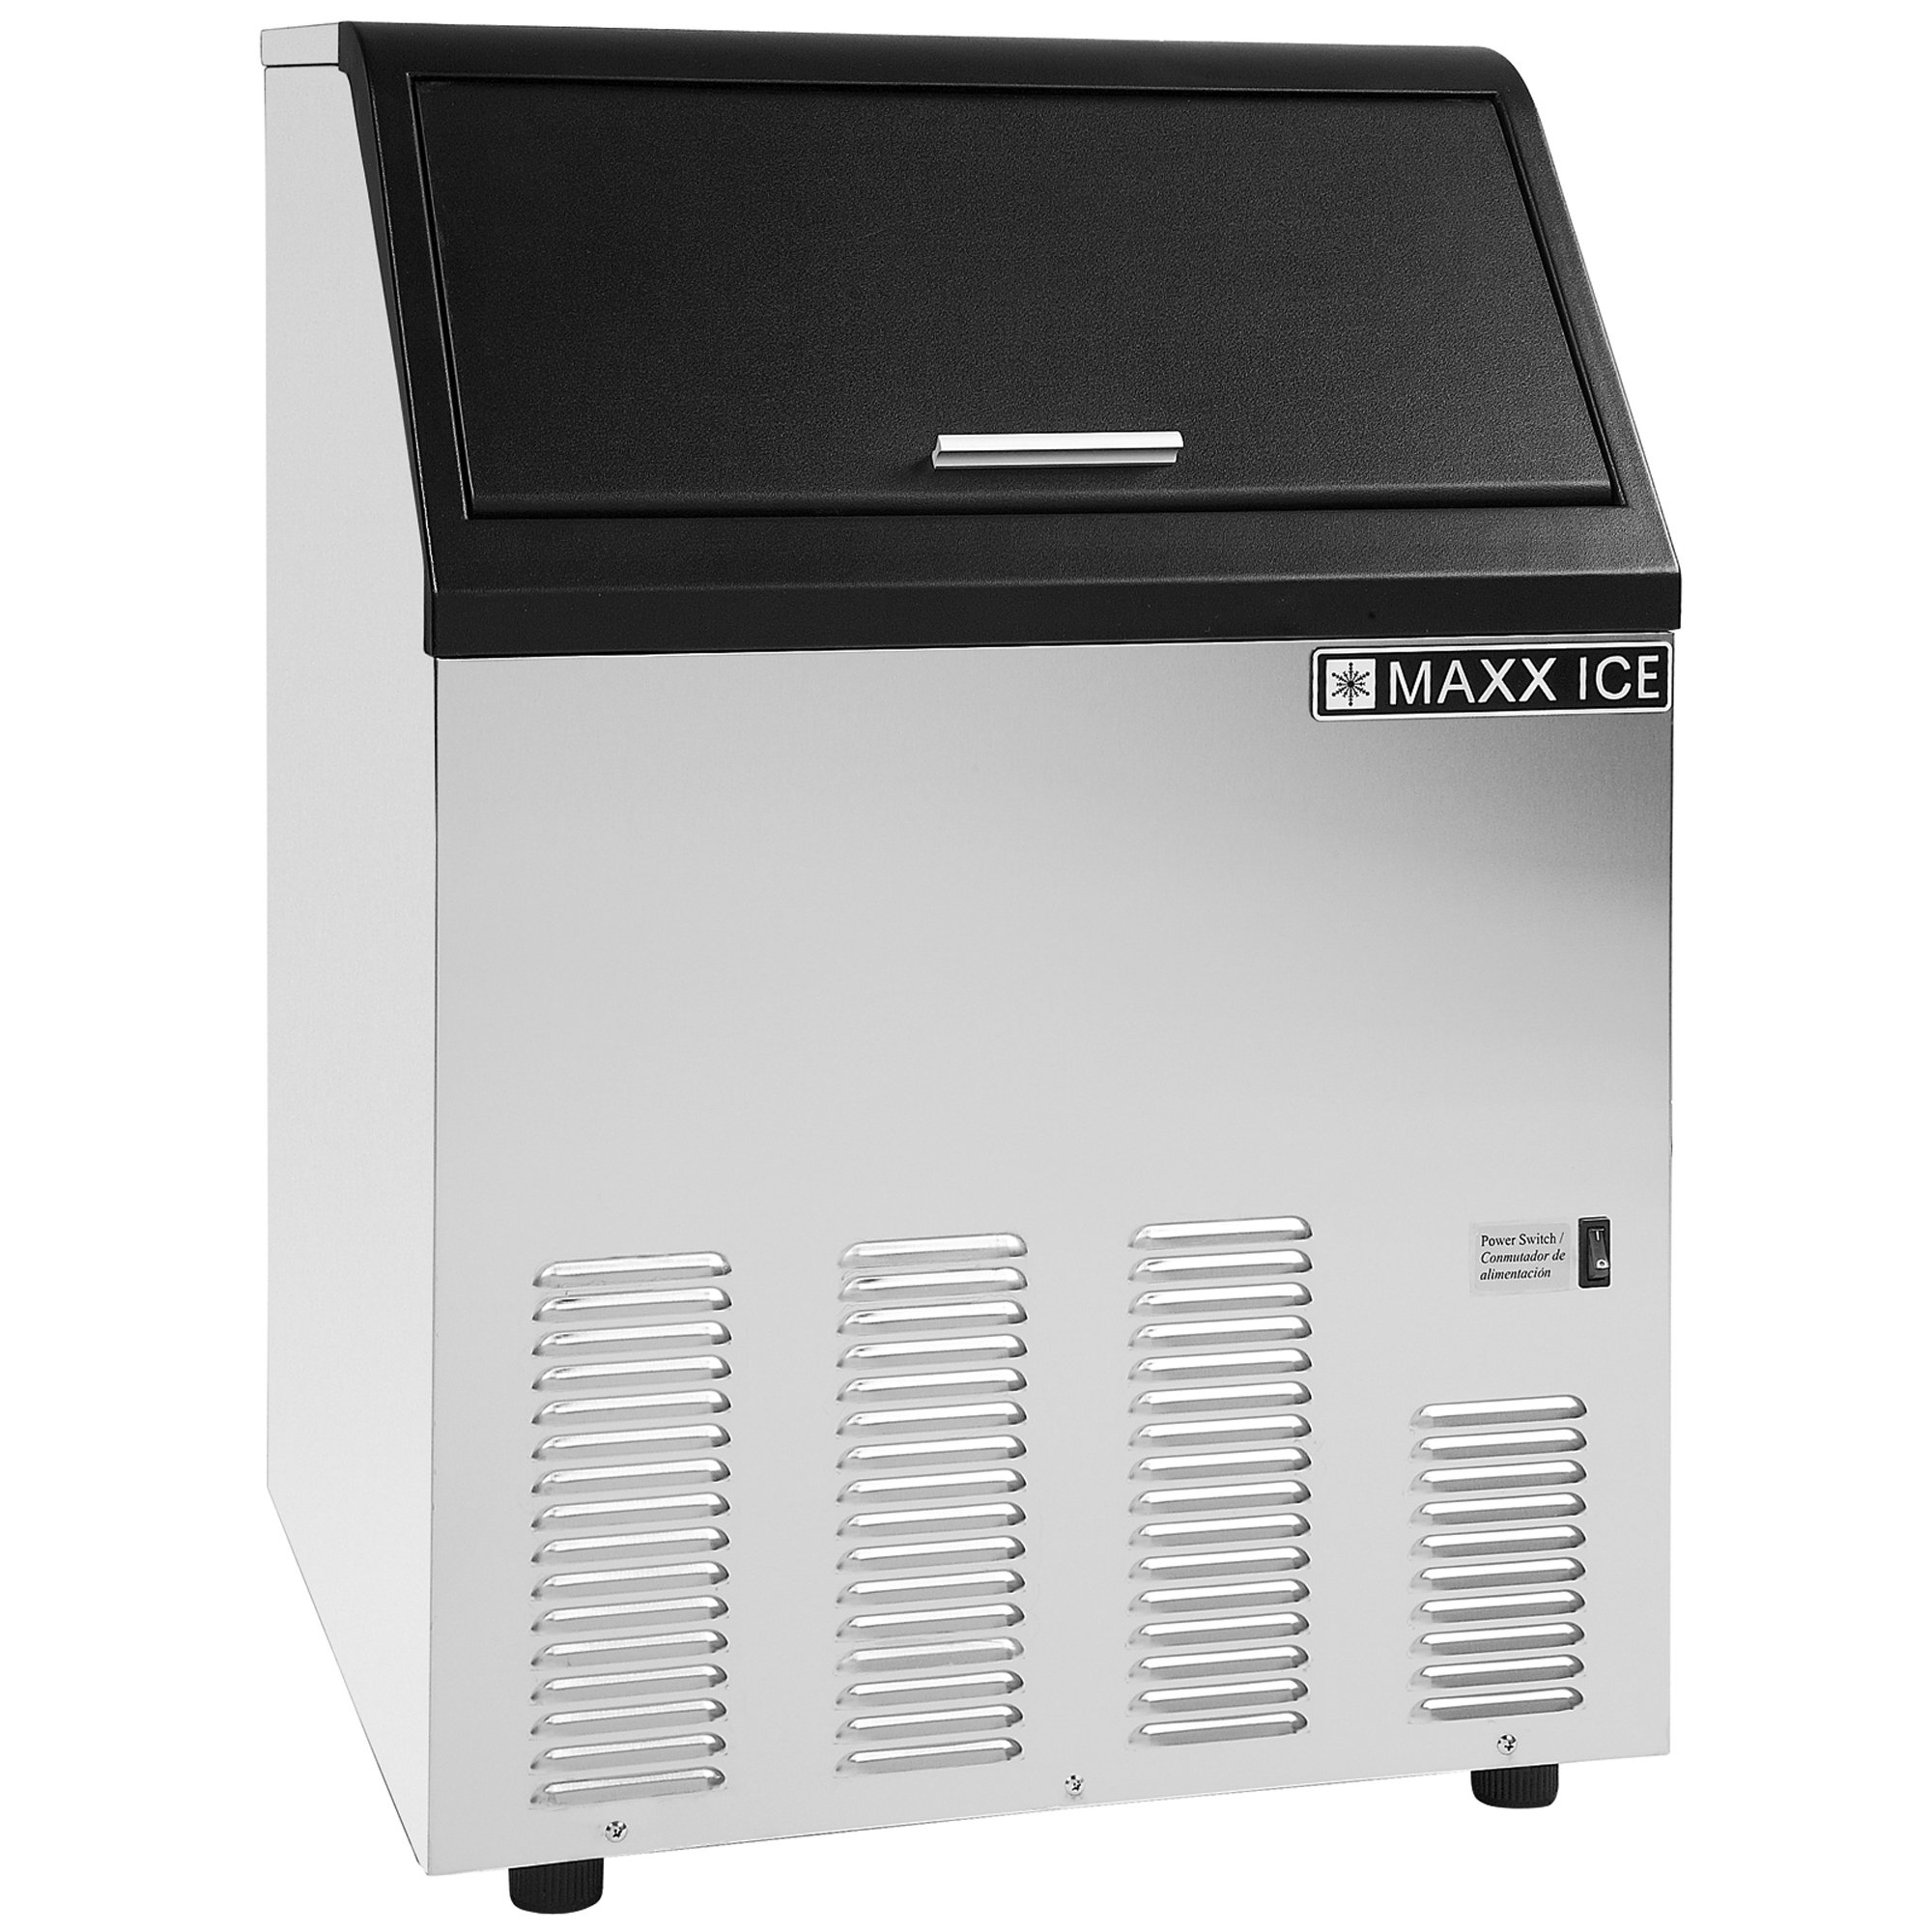 Maxx Ice MIM130X Energy Star Commercial 130 Pound Self Contained Clear Bullet Ice Maker - REFURBISHED